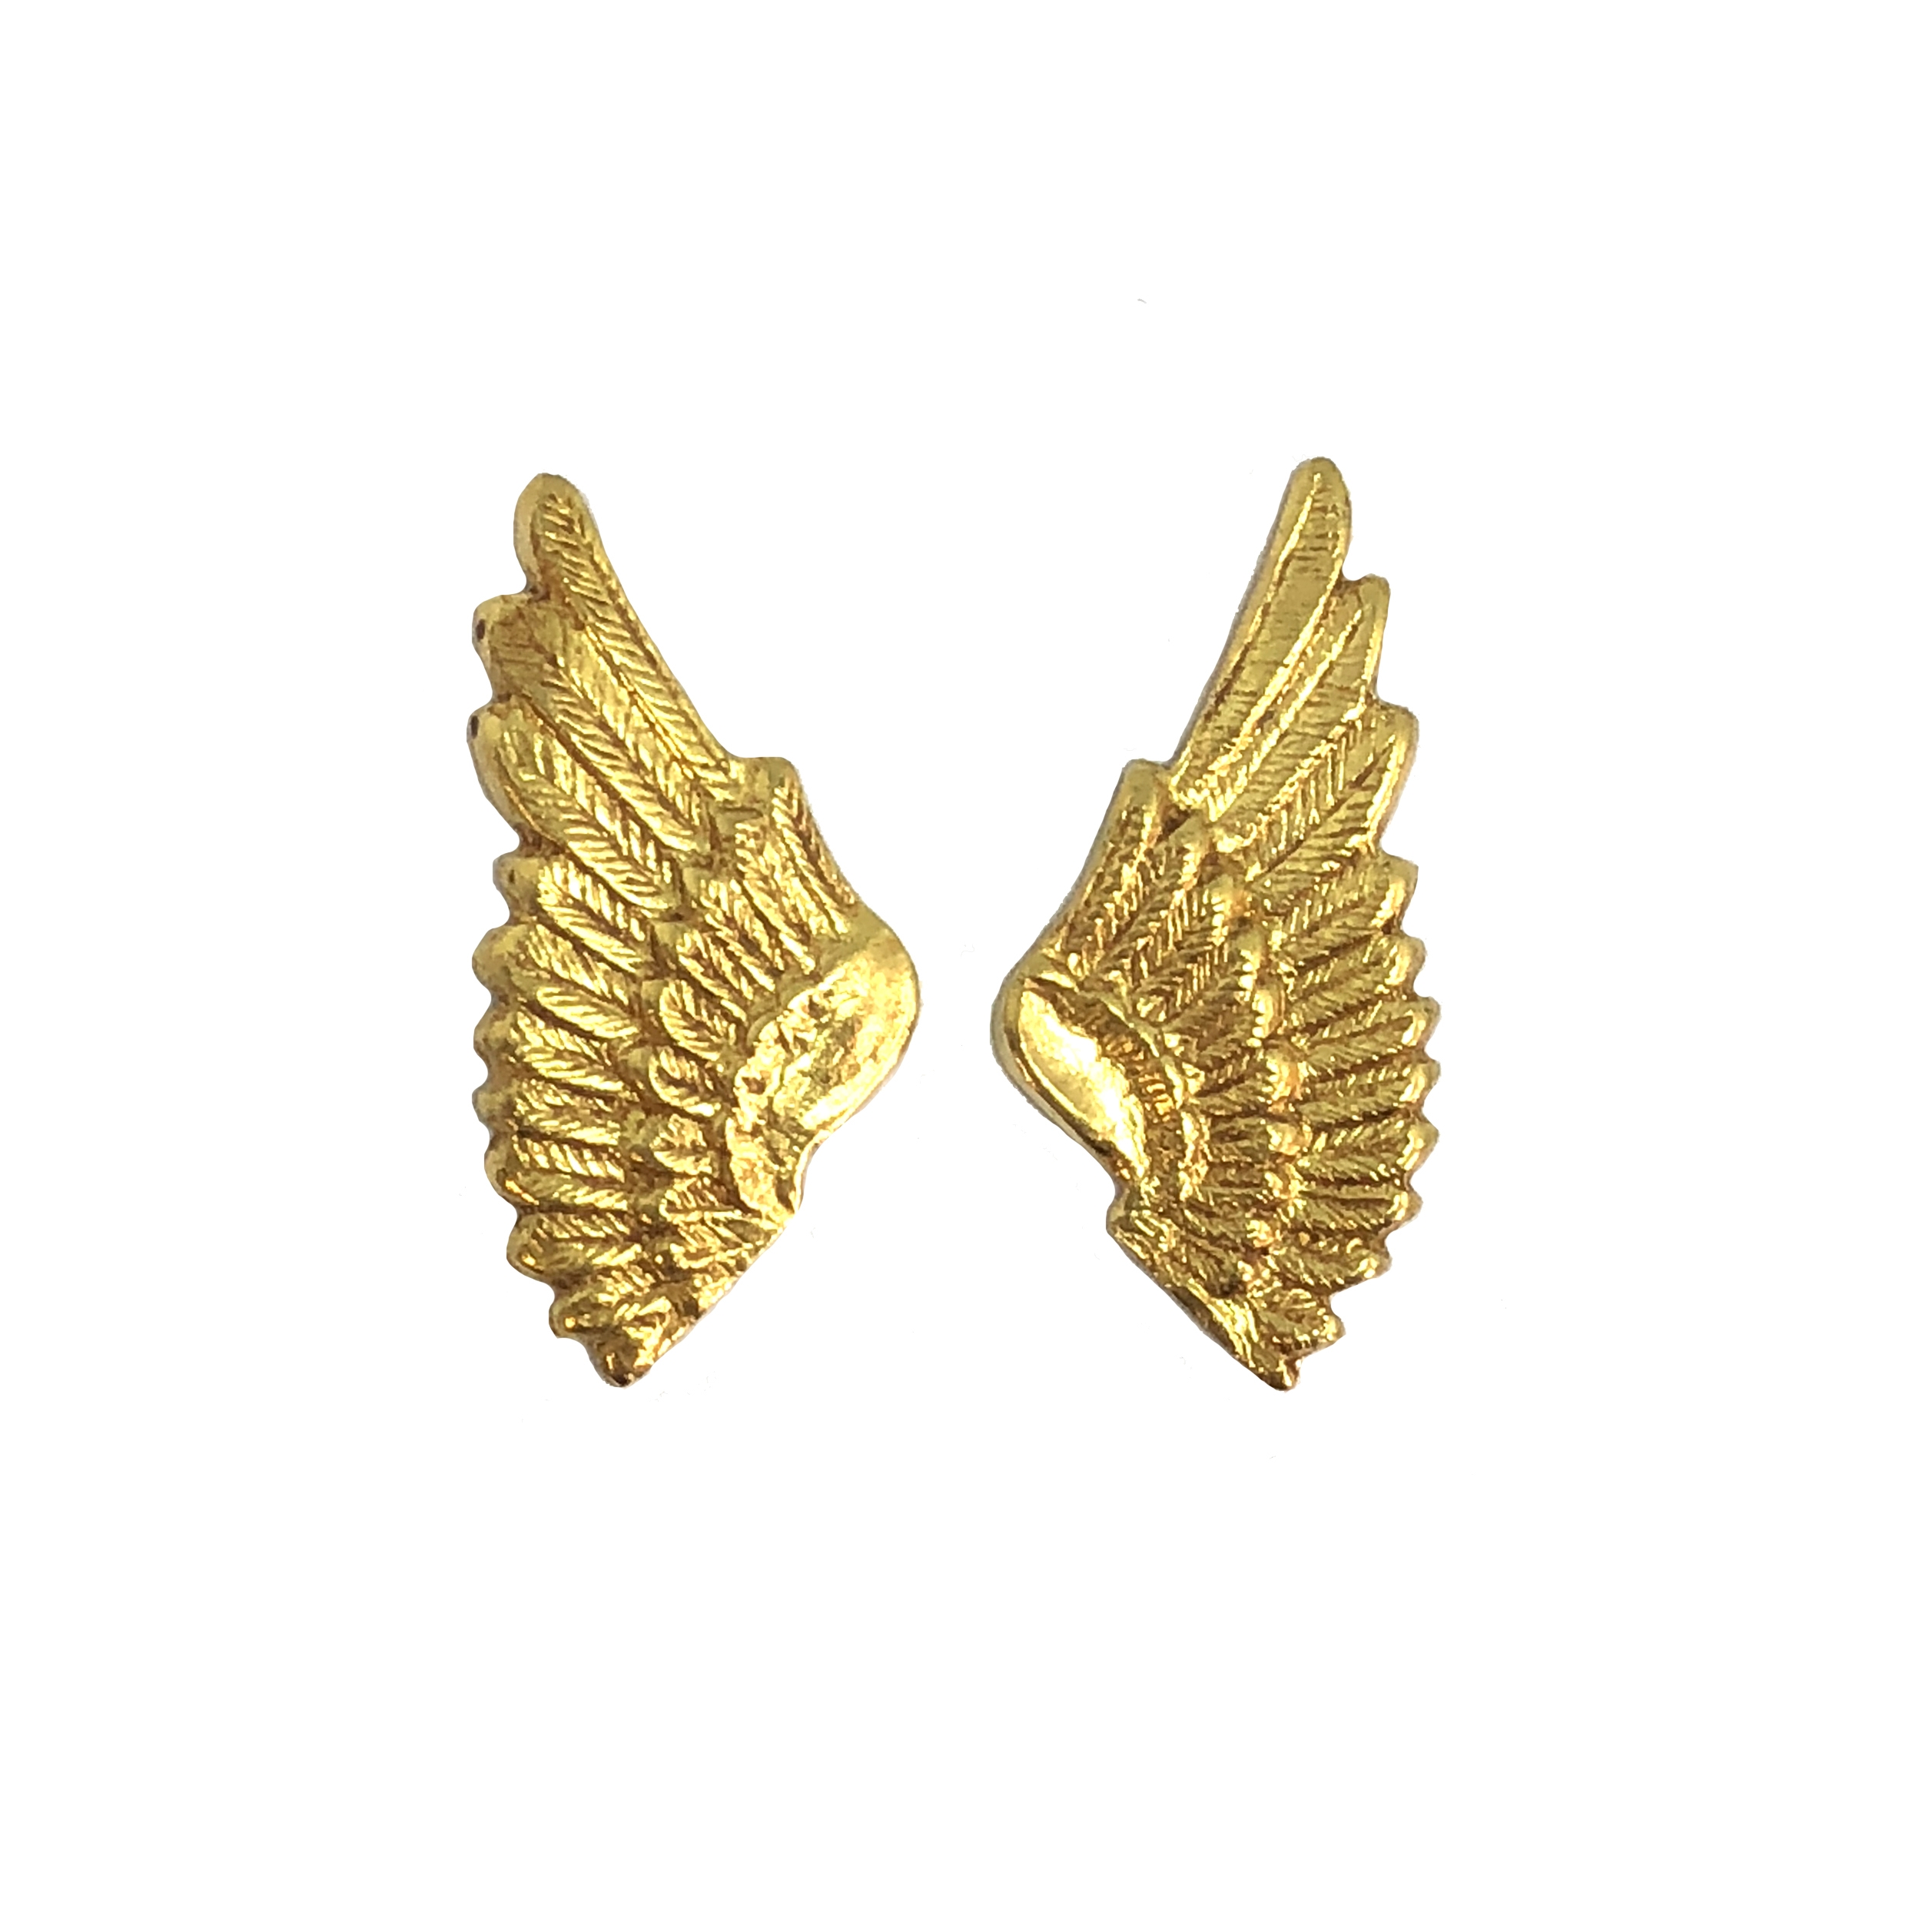 brass wings, bird wings, classic gold, 08468, gold, wings, small wings, vintage jewelry supplies, brass jewelry parts, jewelry making supplies, US made, nickel free, Bsue Boutiques